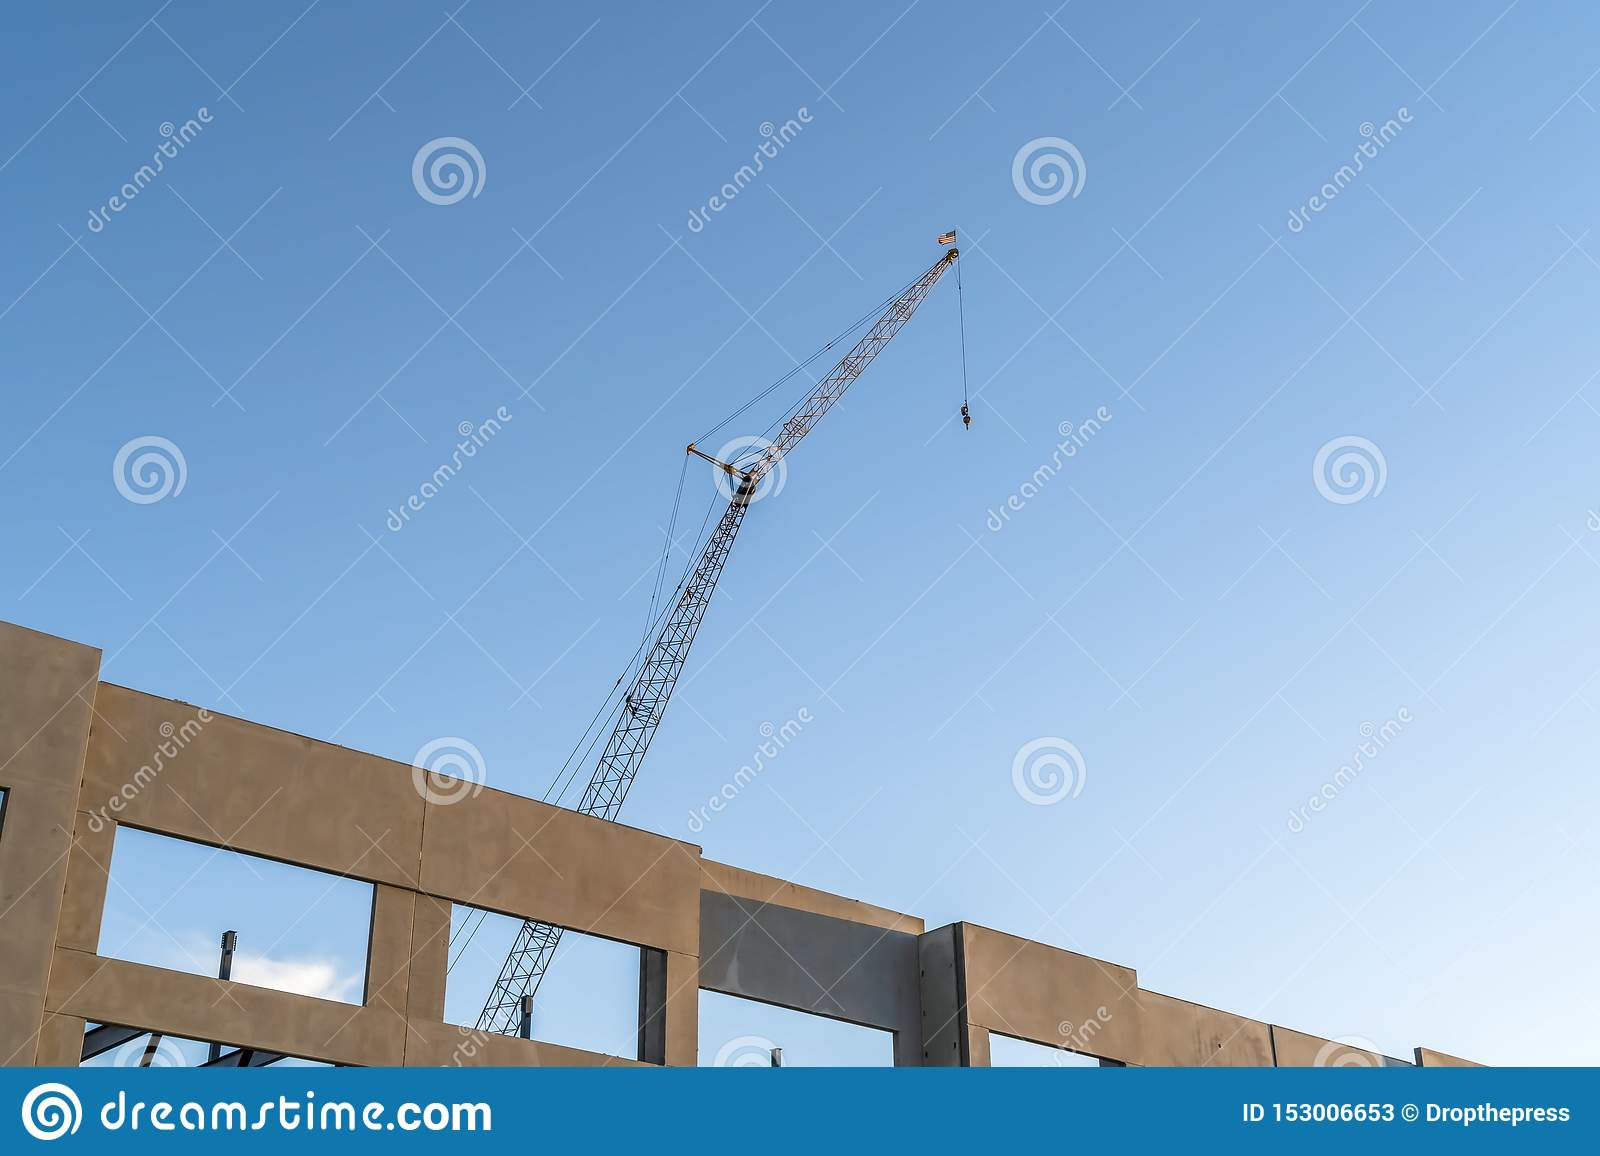 Unfinished building exterior and construction crane with blue sky background